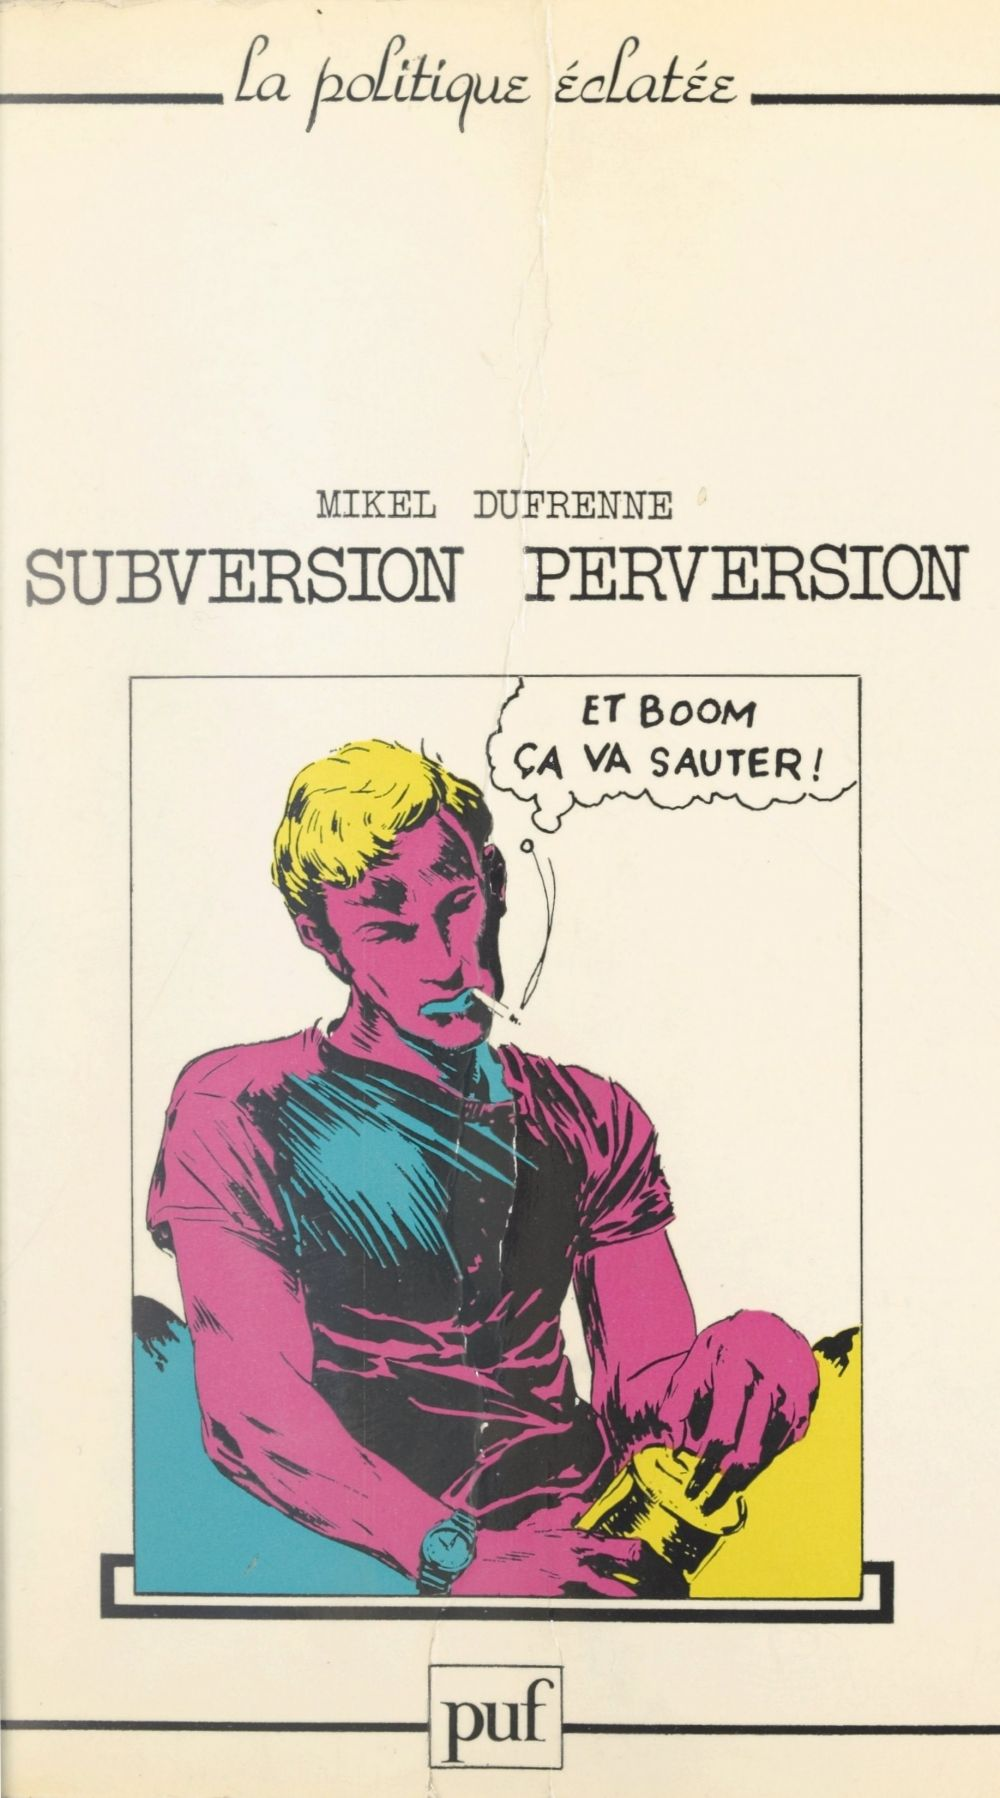 Subversion, perversion